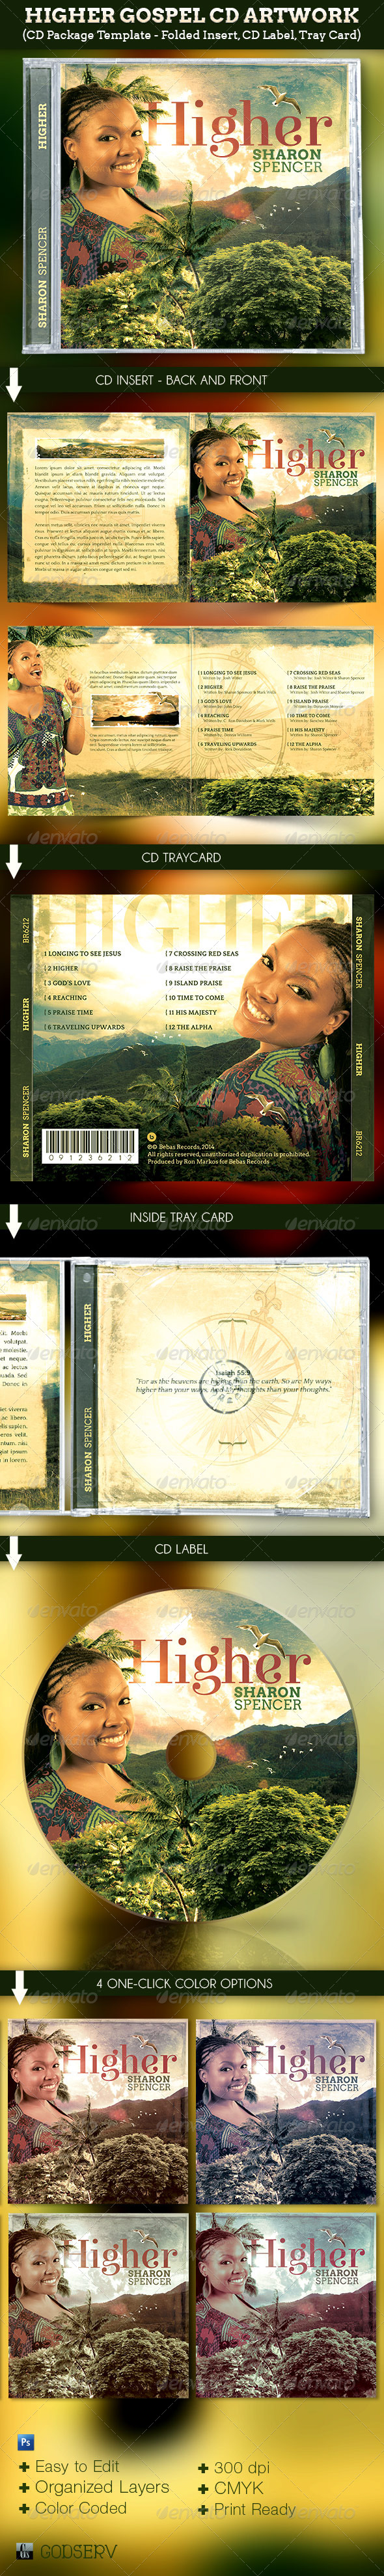 GraphicRiver Higher Gospel CD Artwork Template 5167305